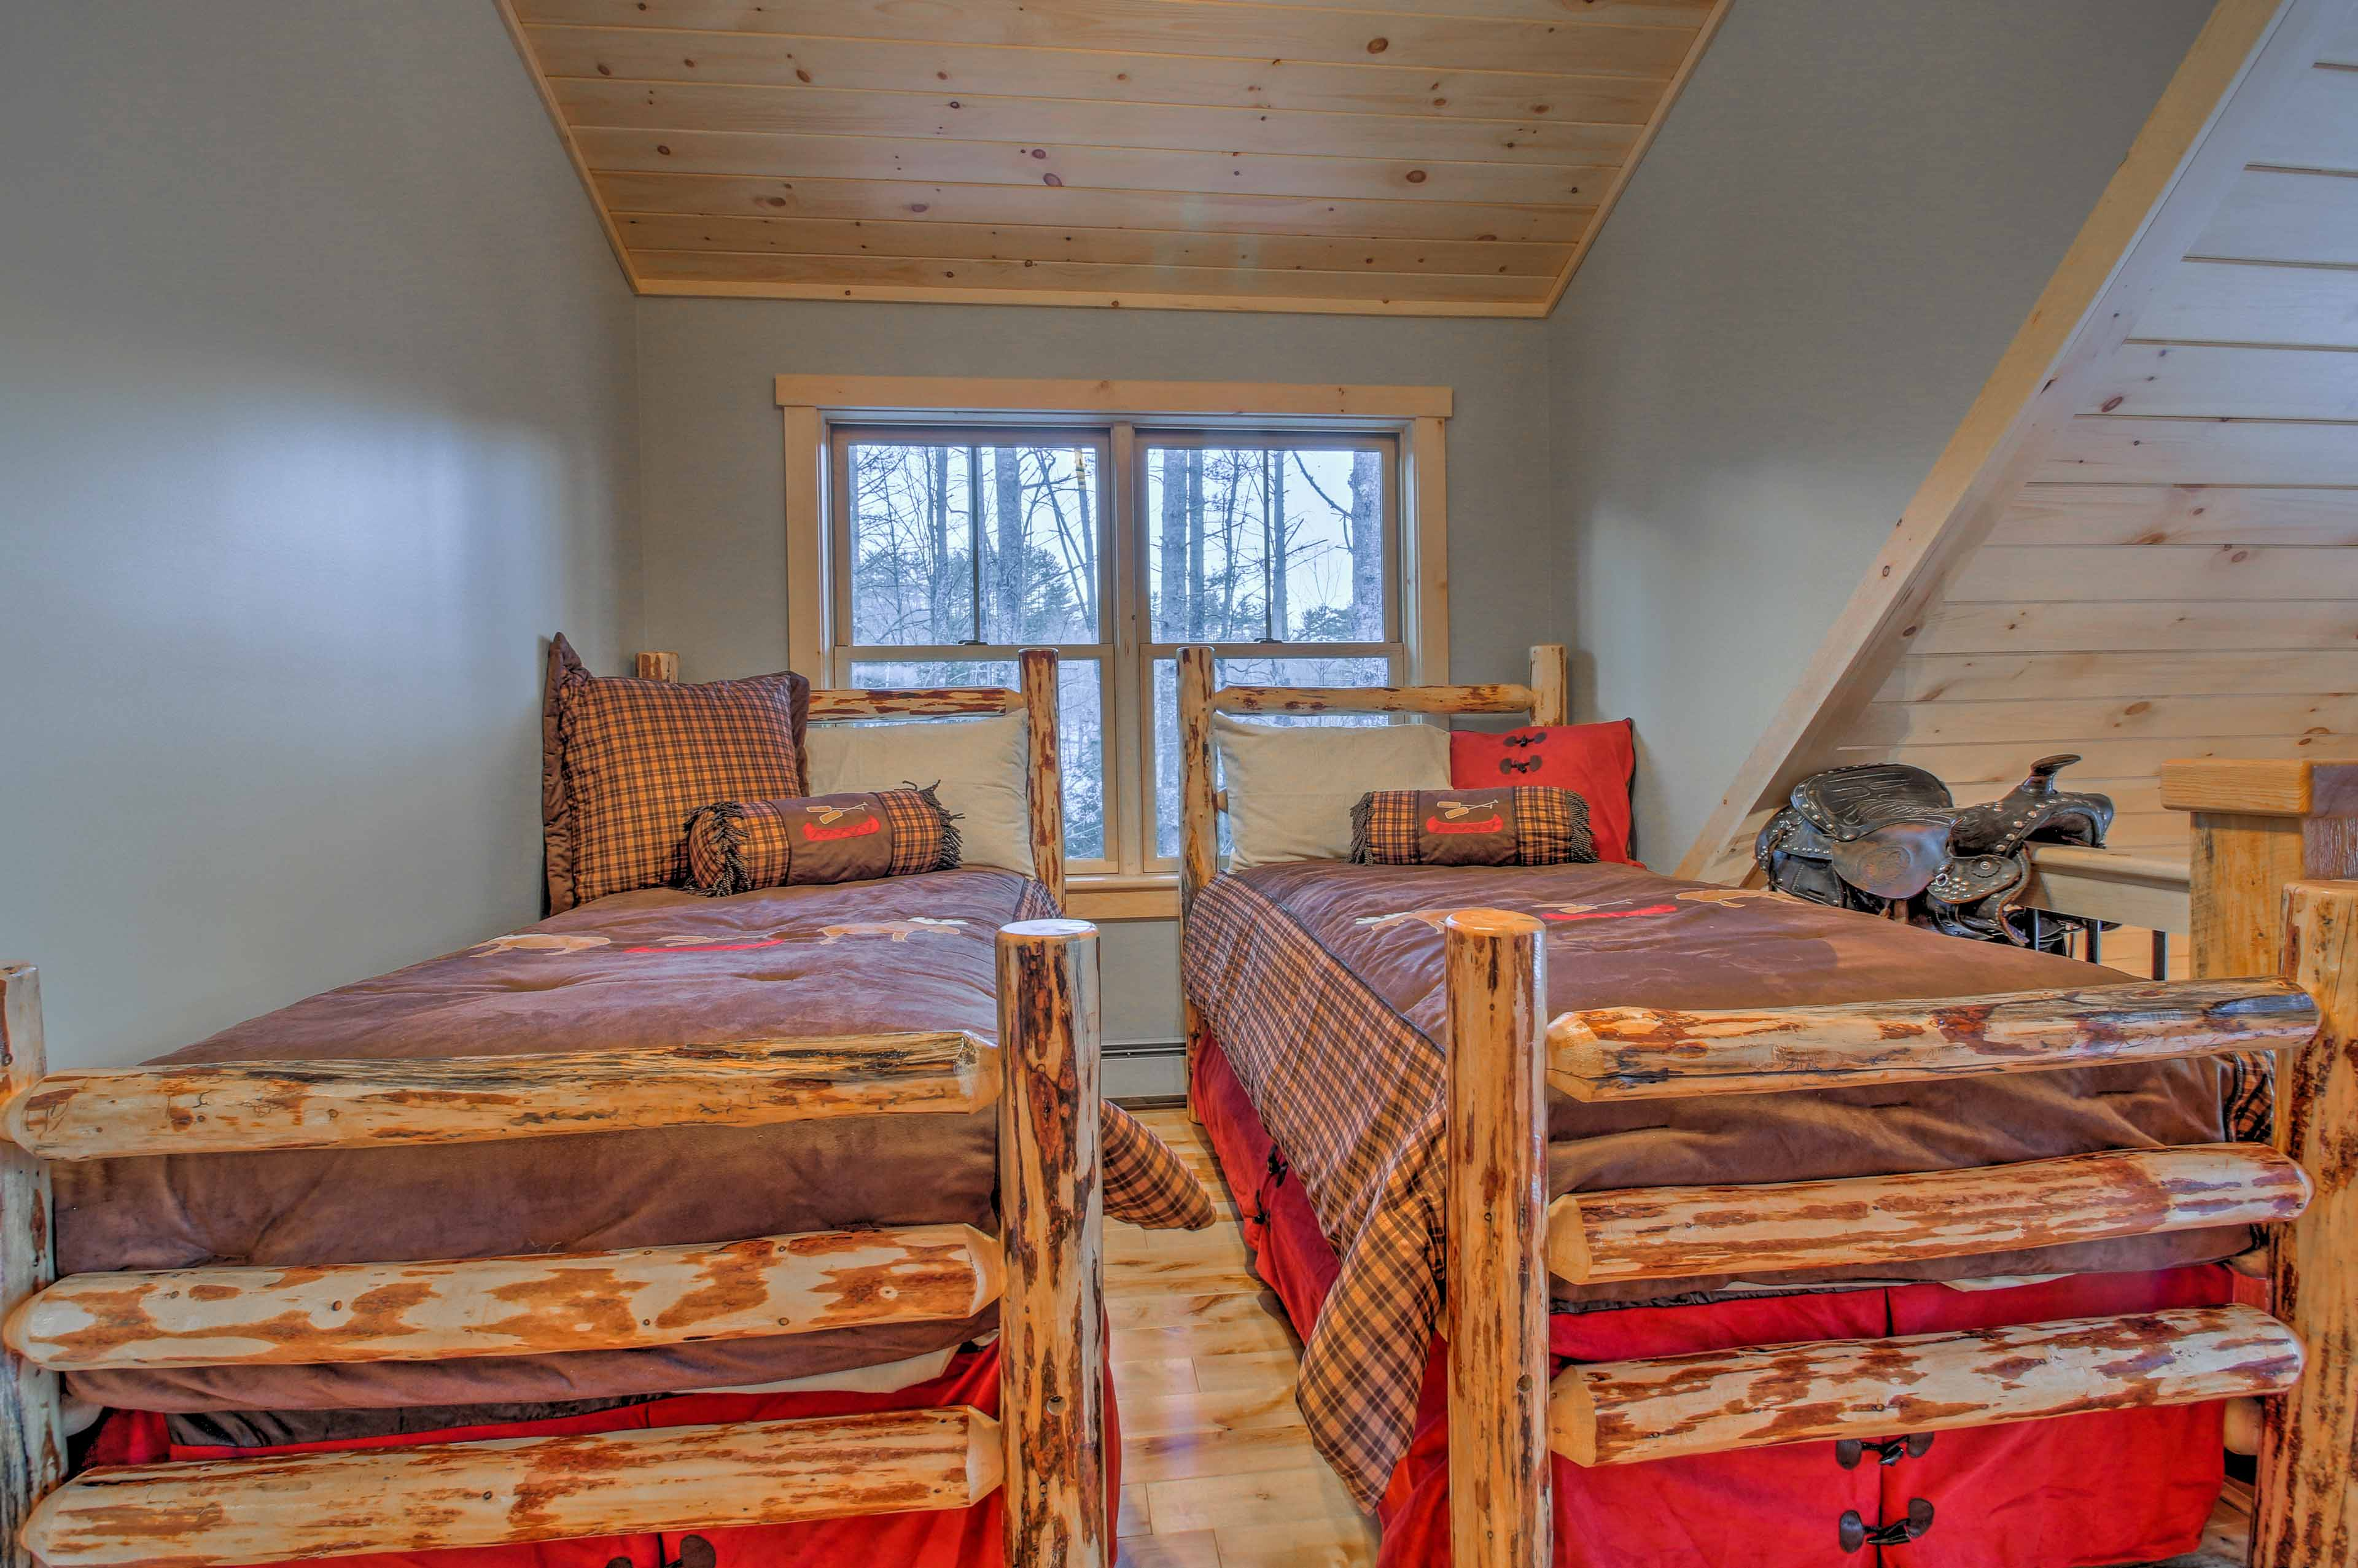 You'll find 2 twin beds under the pine-paneled vaulted ceilings.